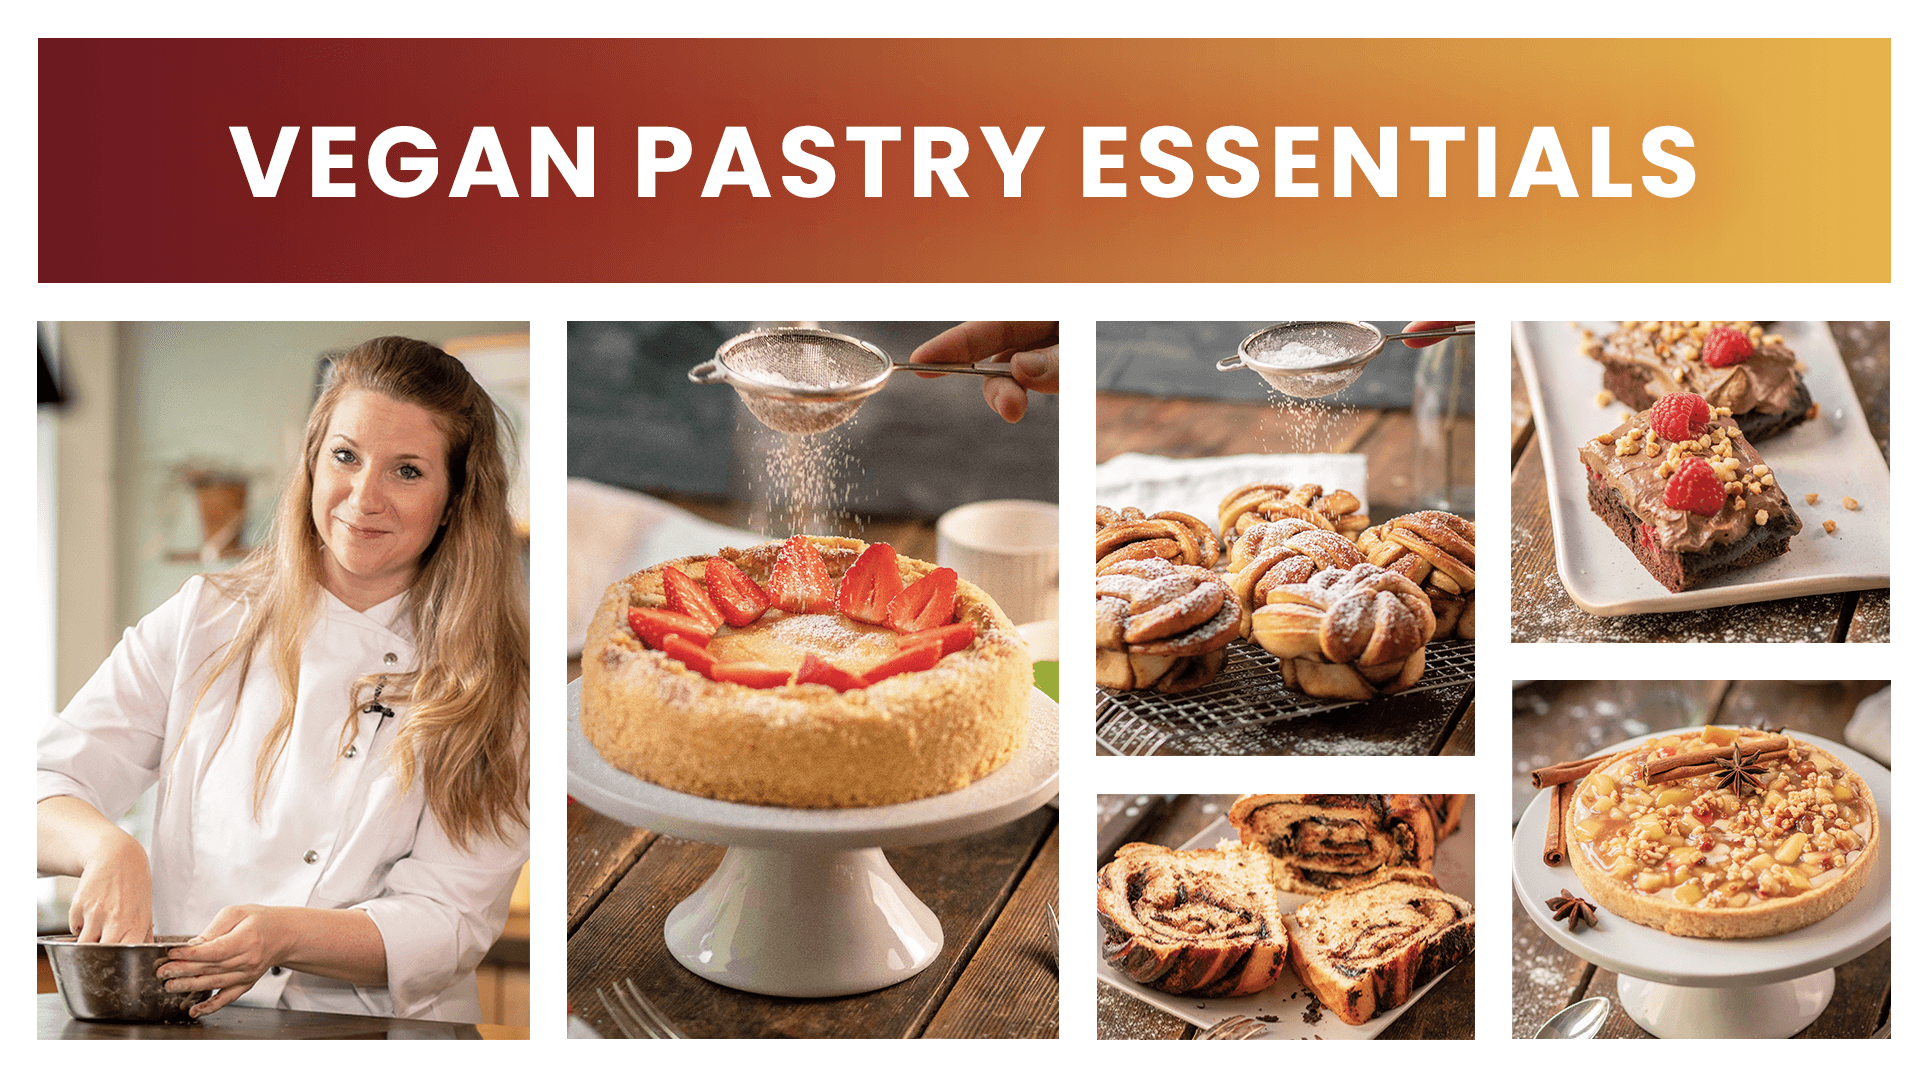 Vegan Pastry Essentials Online Course